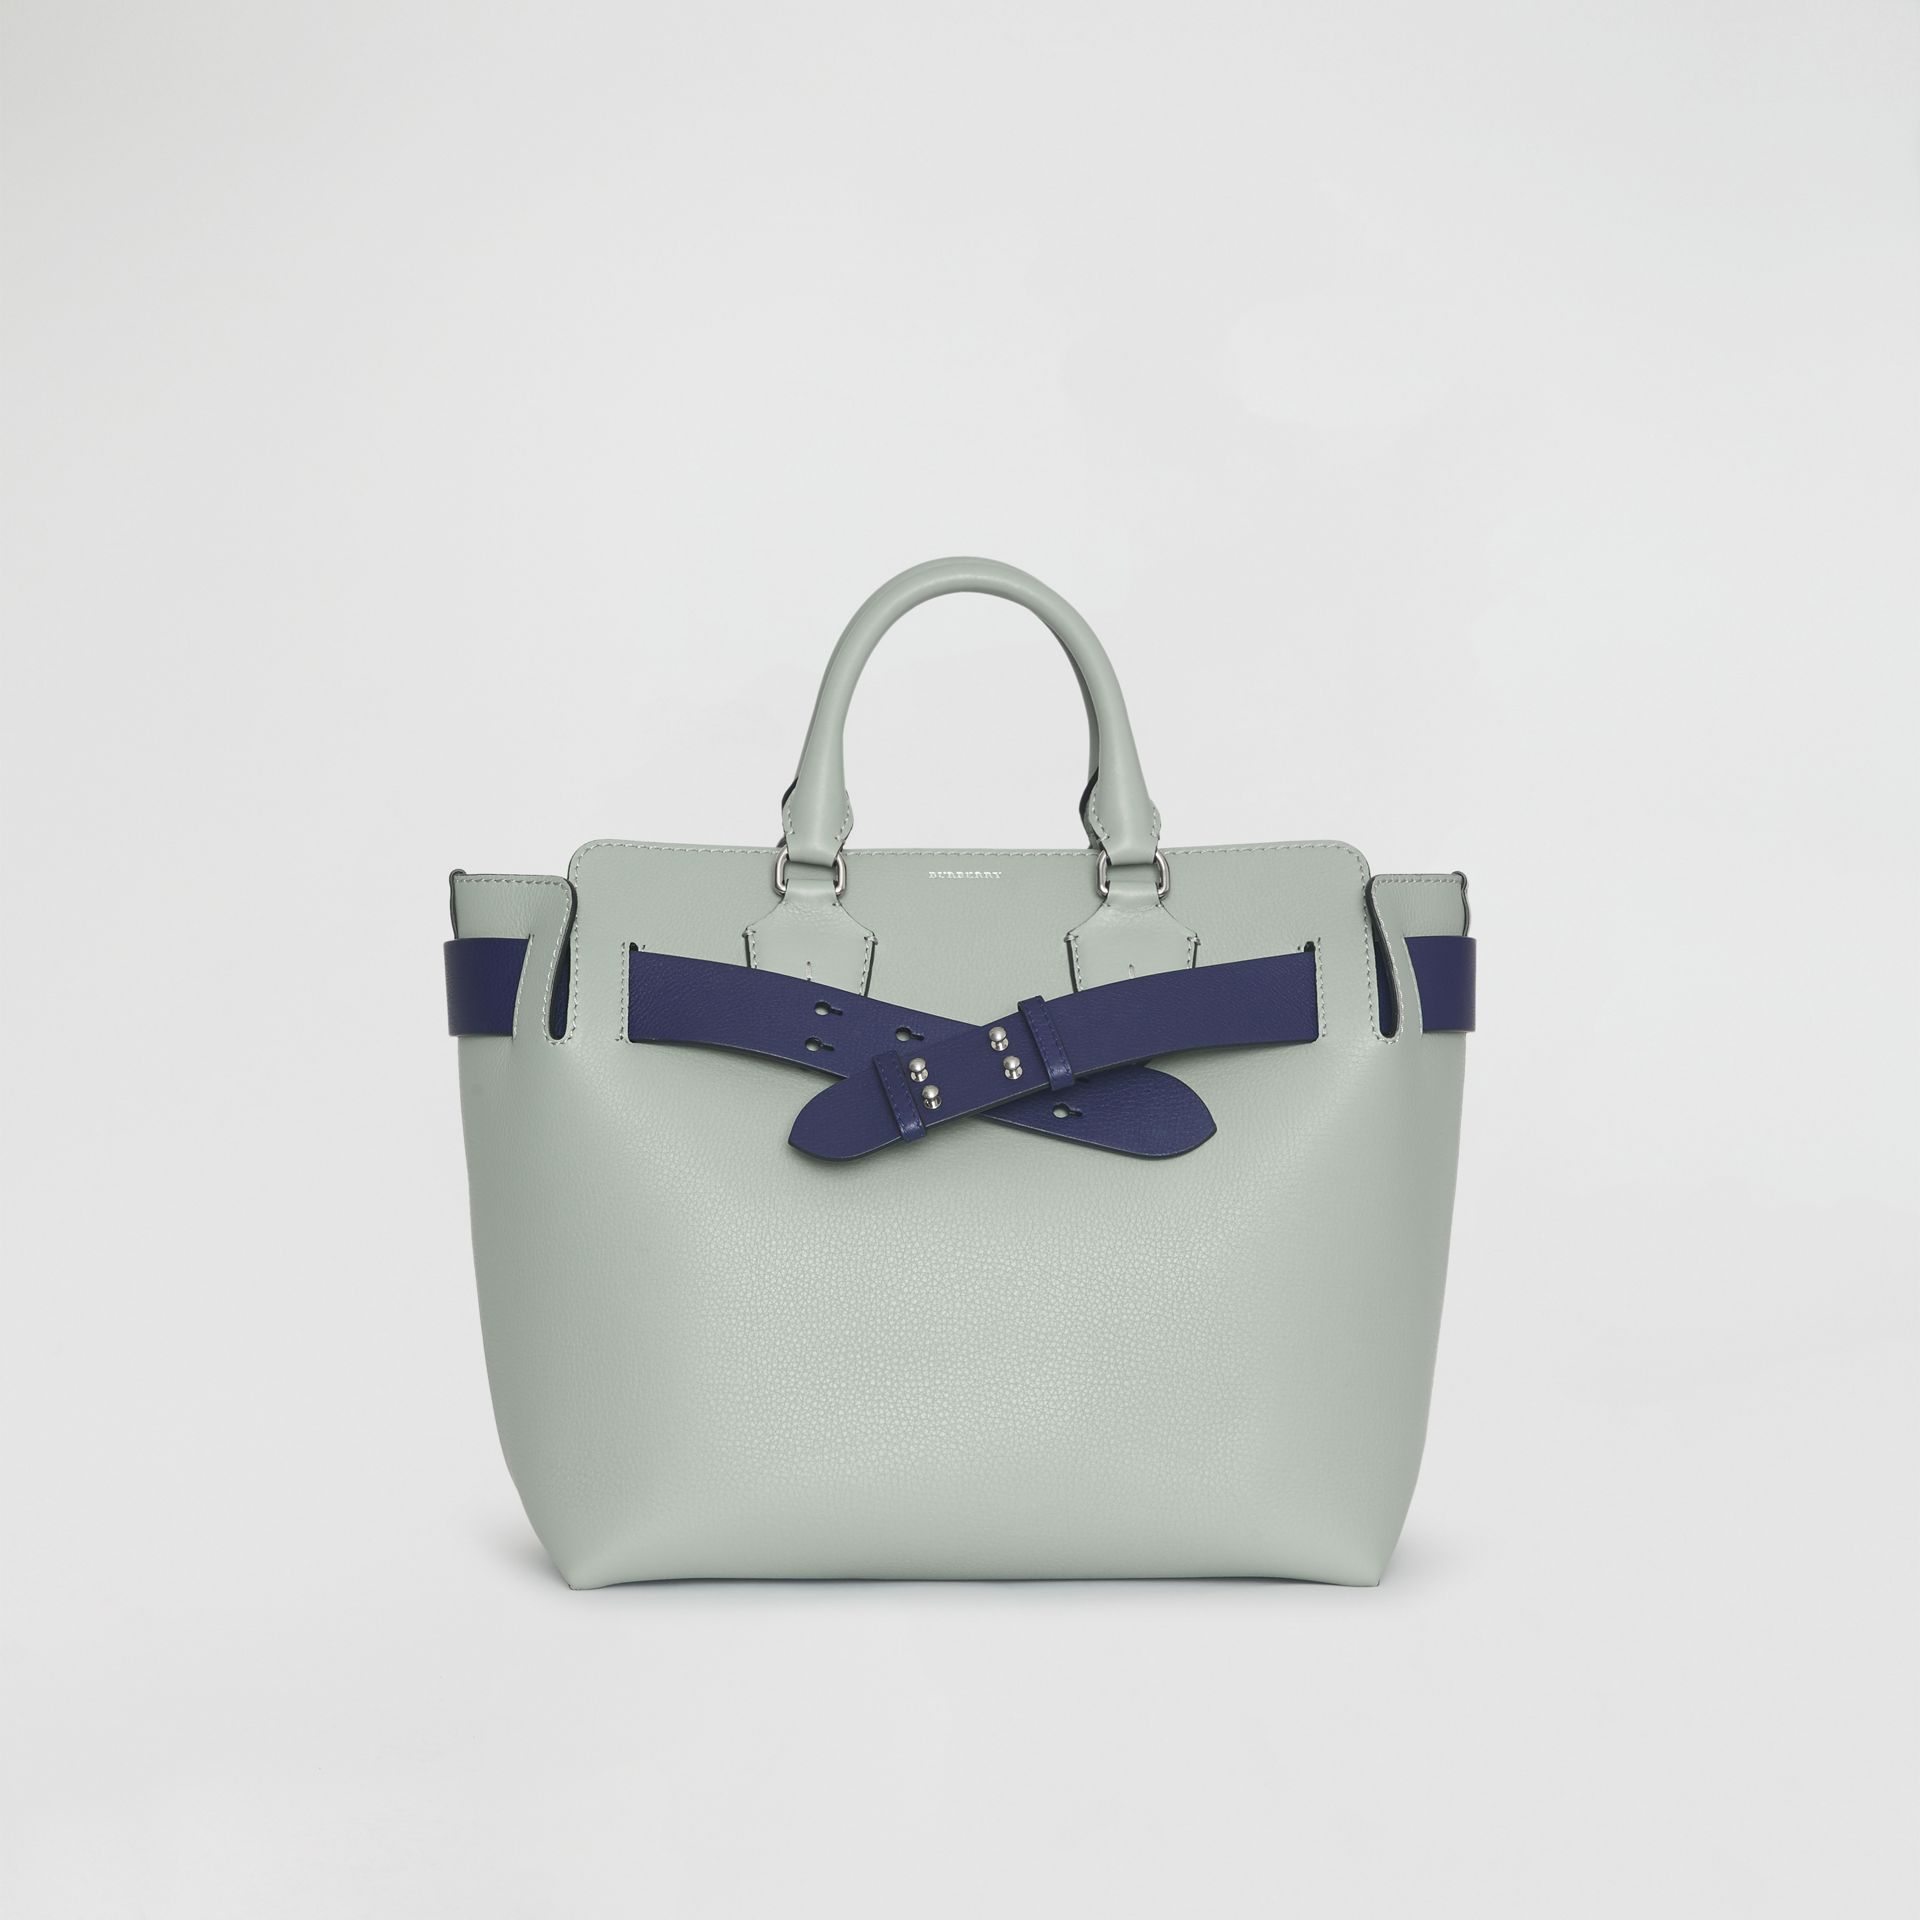 Borsa The Belt media in pelle (Blu Grigio) - Donna | Burberry - immagine della galleria 0